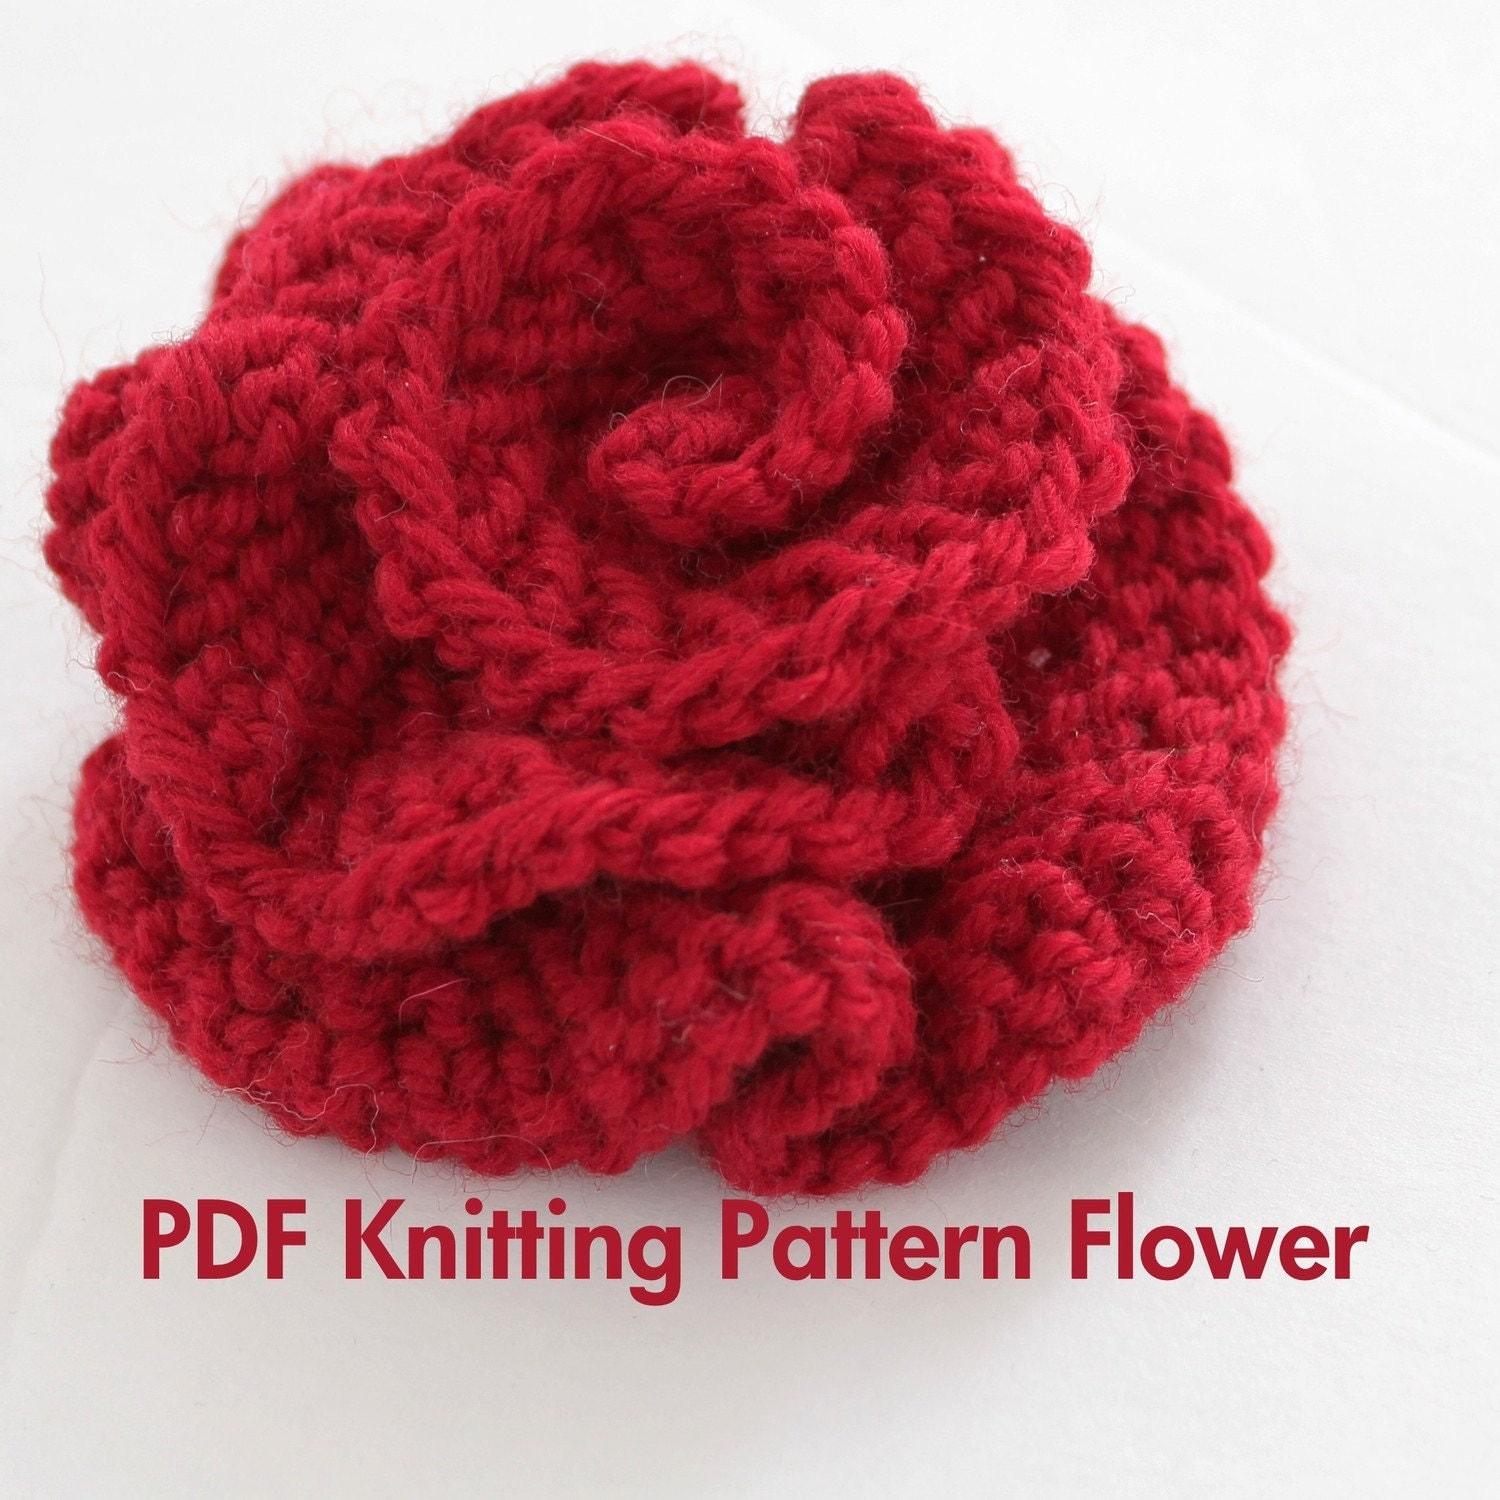 Knitting Tutorial : Pattern knitted flower pdf very easy photo